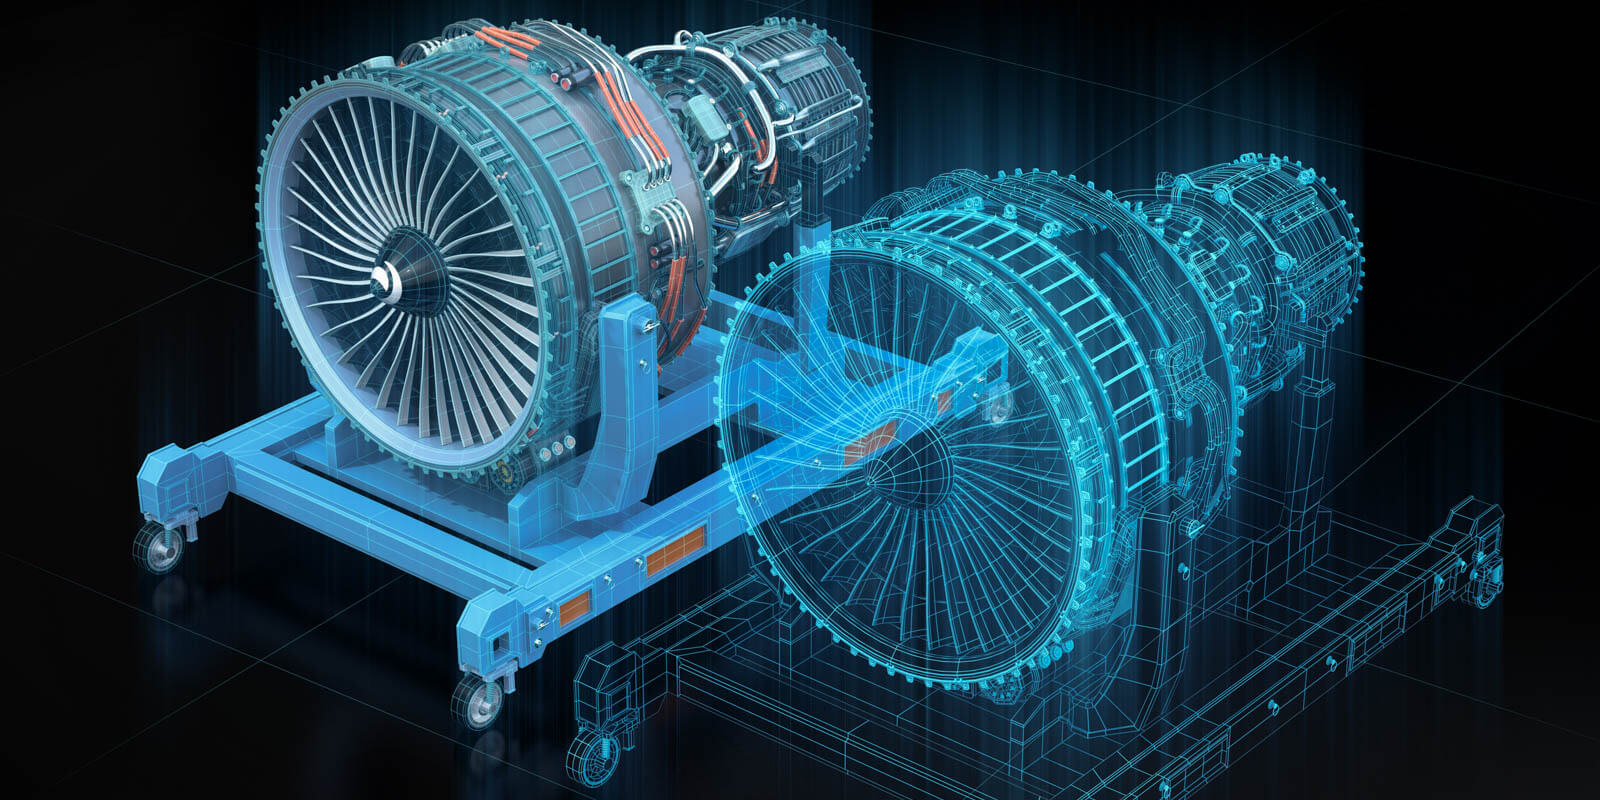 a digital twin of a turbine